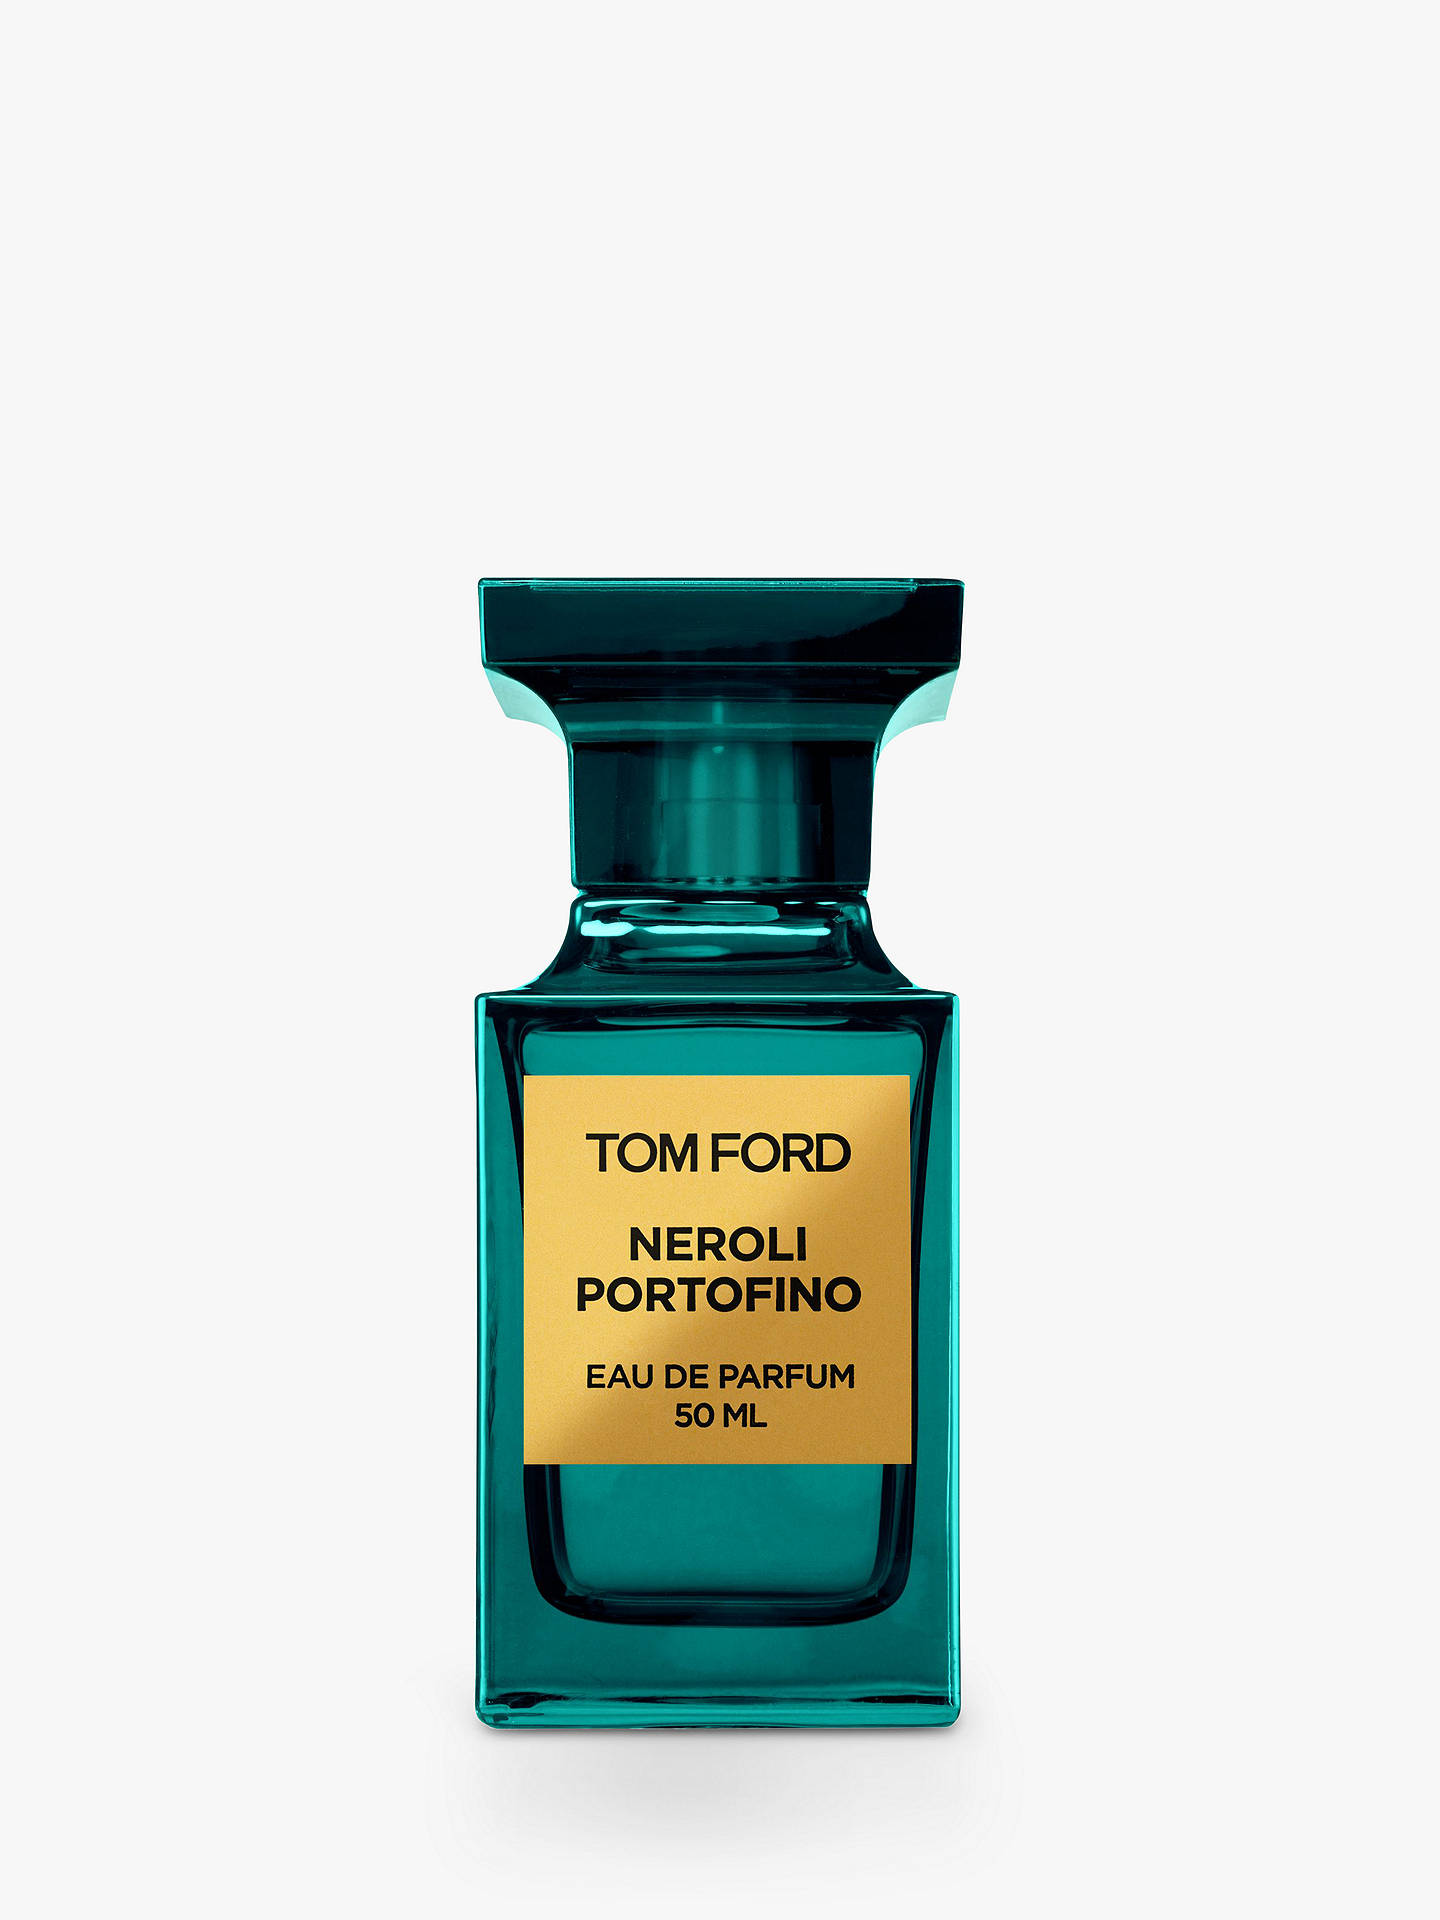 Tom Ford Private Blend Neroli Portofino Eau De Parfum 50ml At John